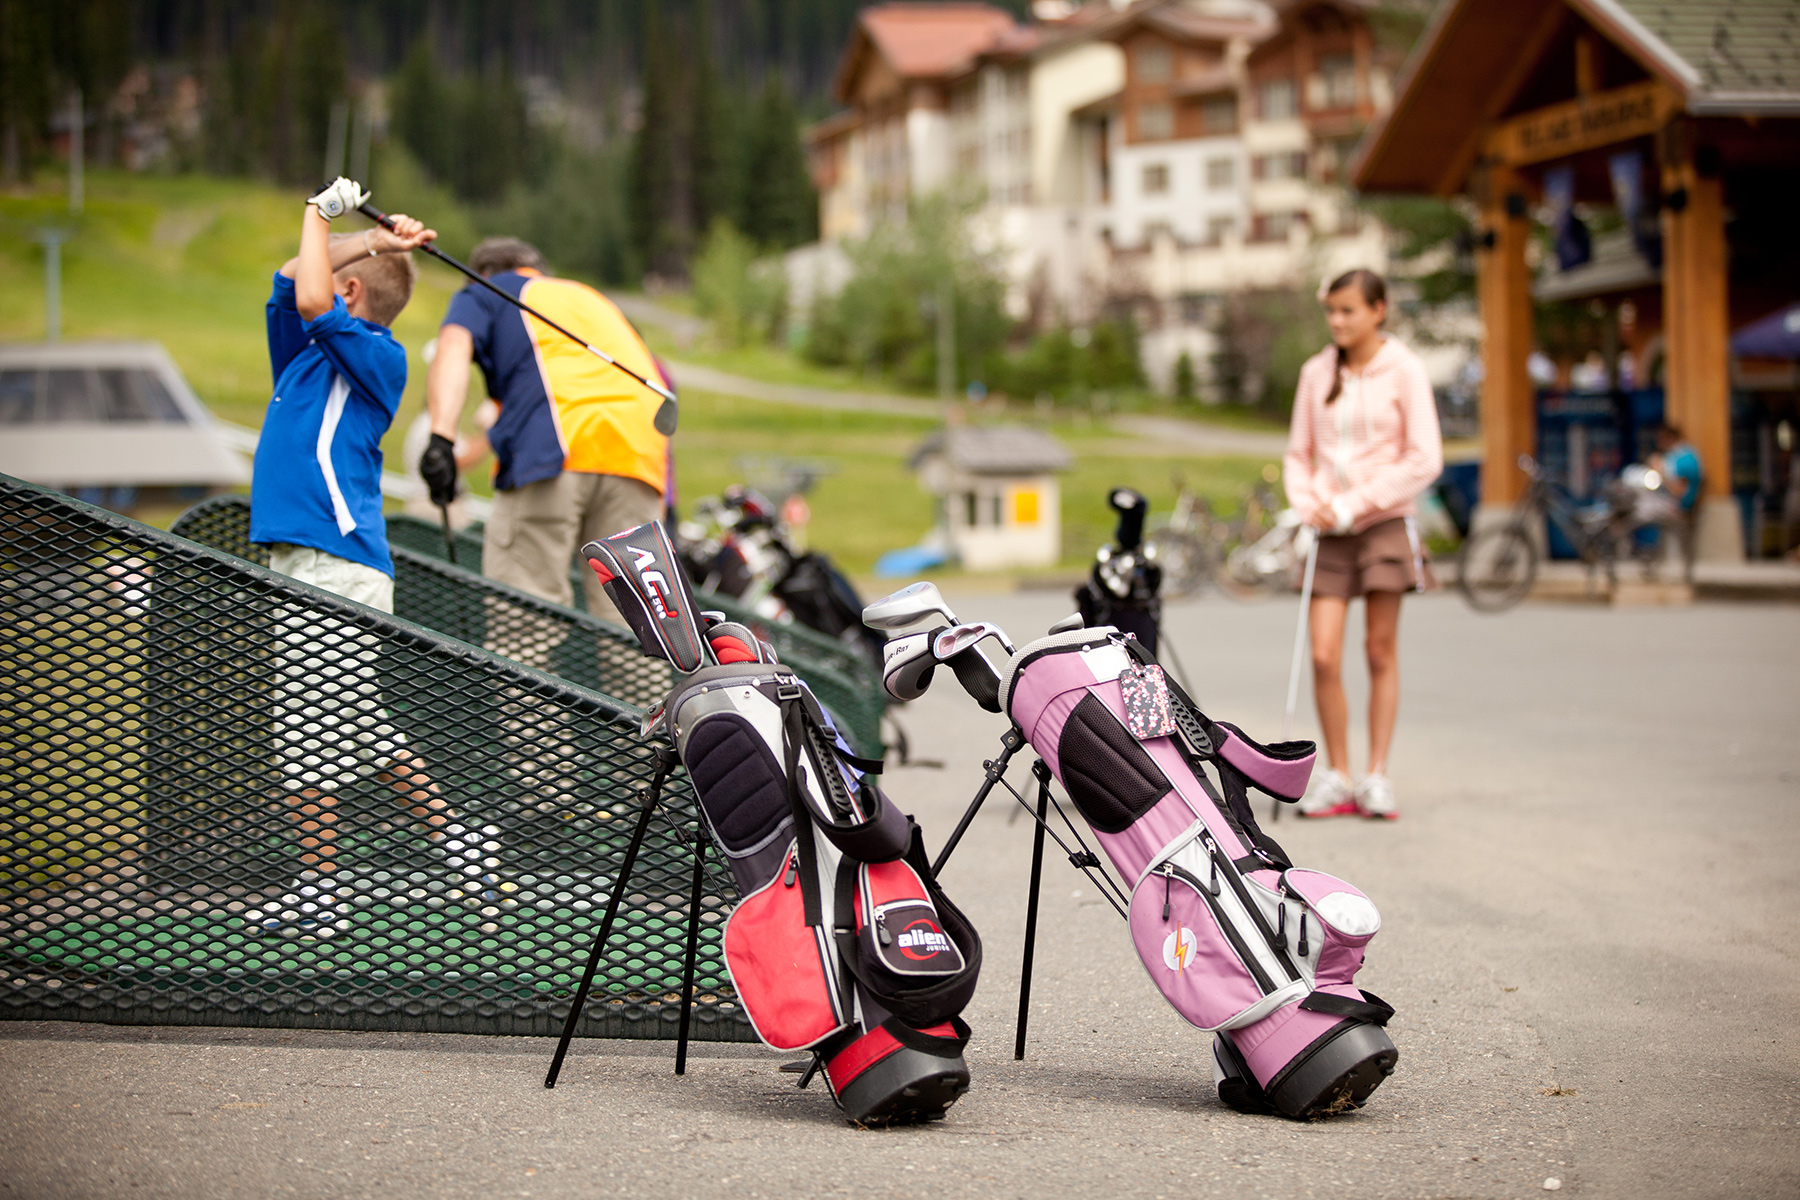 Driving Range at Sun Peaks Resort